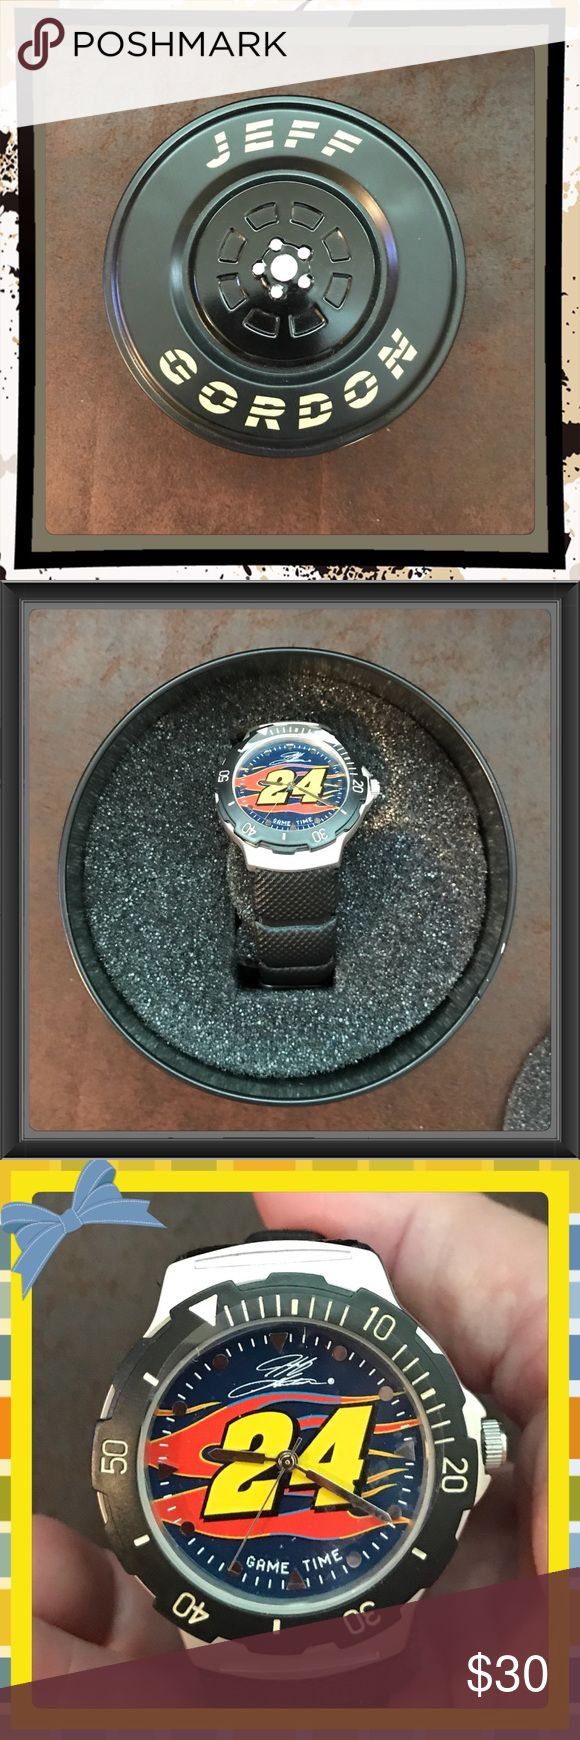 New Never Worn Jeff Gordon Watch W/Tire Tin Finally my husband is giving up some of his collections he's had all over the house. If your hubby is a Jeff Gordon fan this is a neat gift to get him especially if he'll wear it instead of leaving it on a shelf. It's been kept in the tin, never taken off the foam it's wrapped around & you never know, it may be worth more now since Jeff isn't racing anymore. Nascar Jeff Gordon Accessories Watches